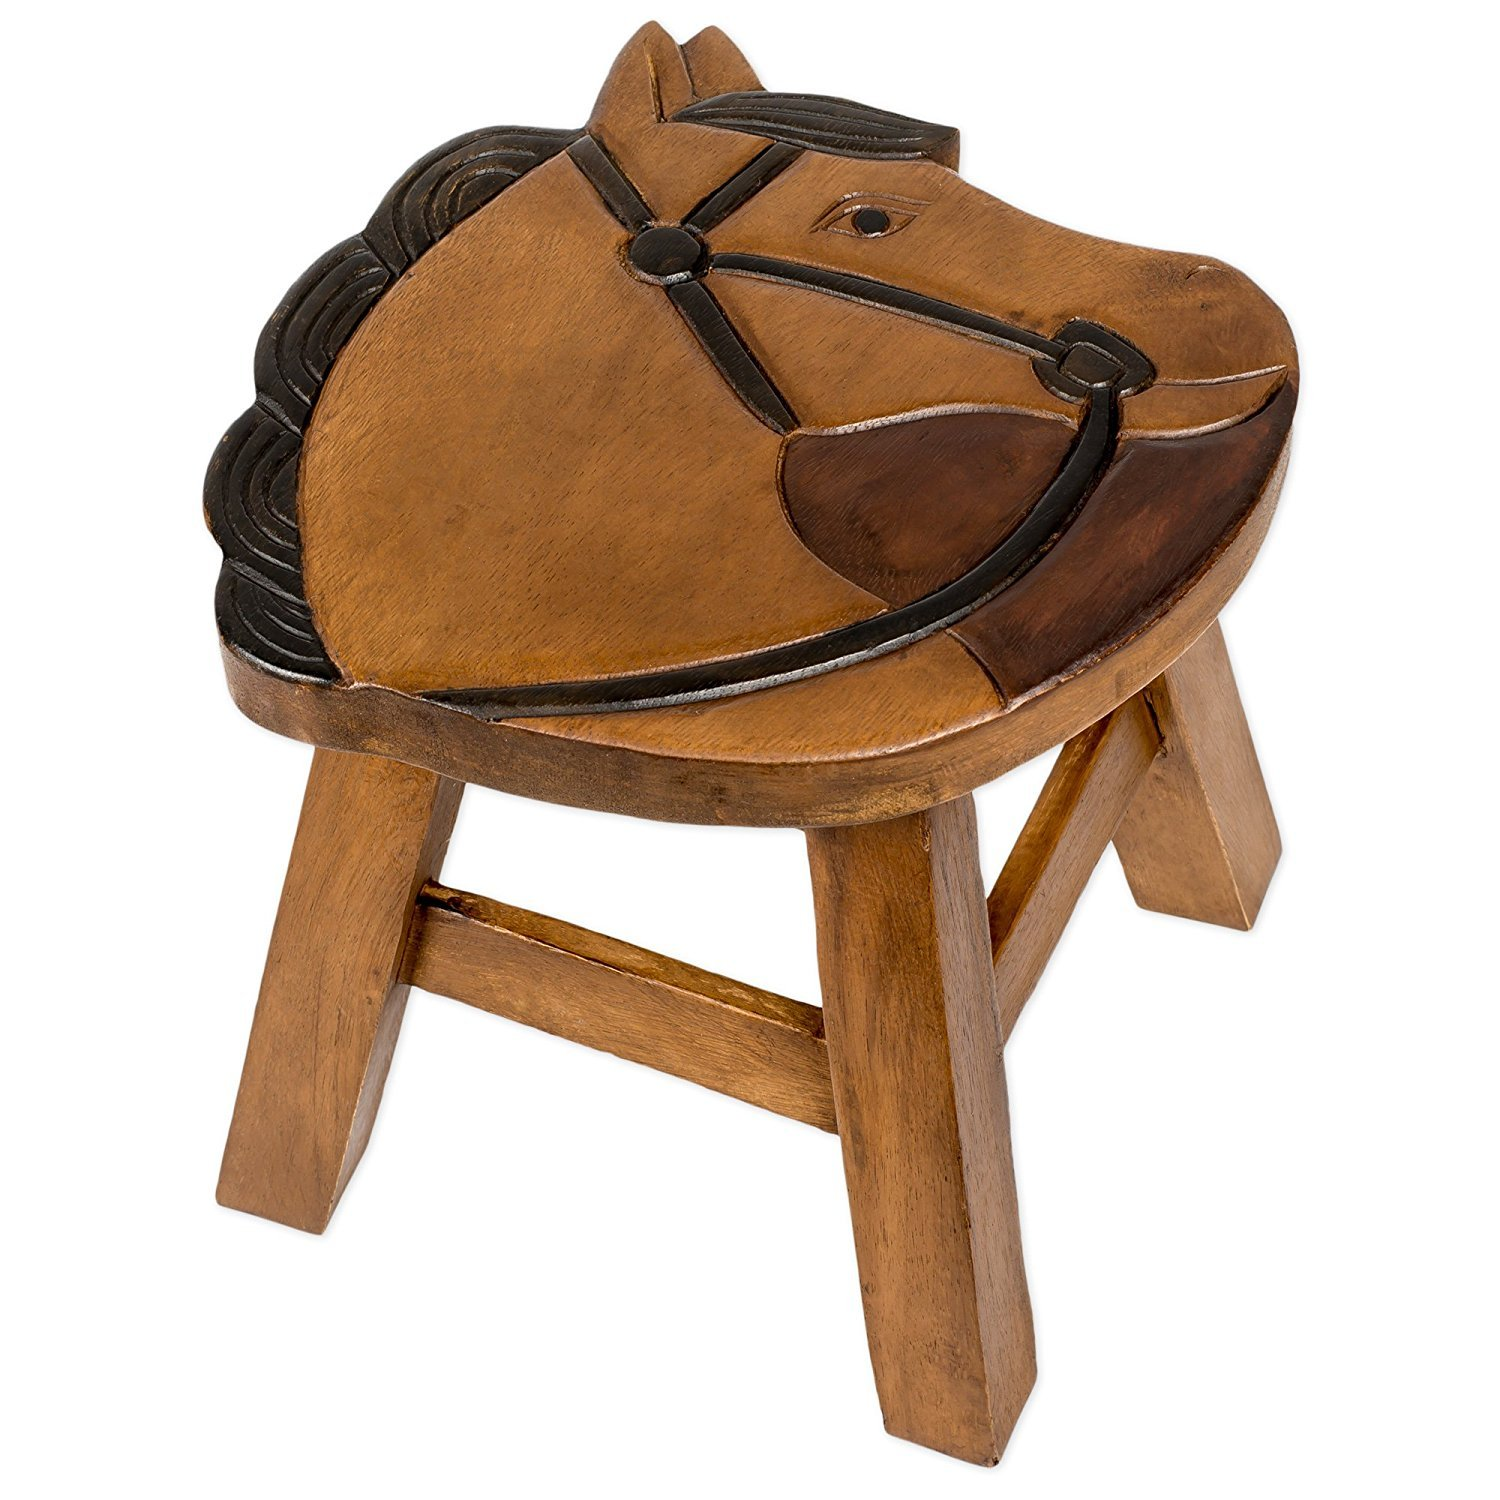 Horse Design Hand Carved Acacia Hardwood Decorative Short Stool Sea Island Imports Inc. SYNCHKG091480